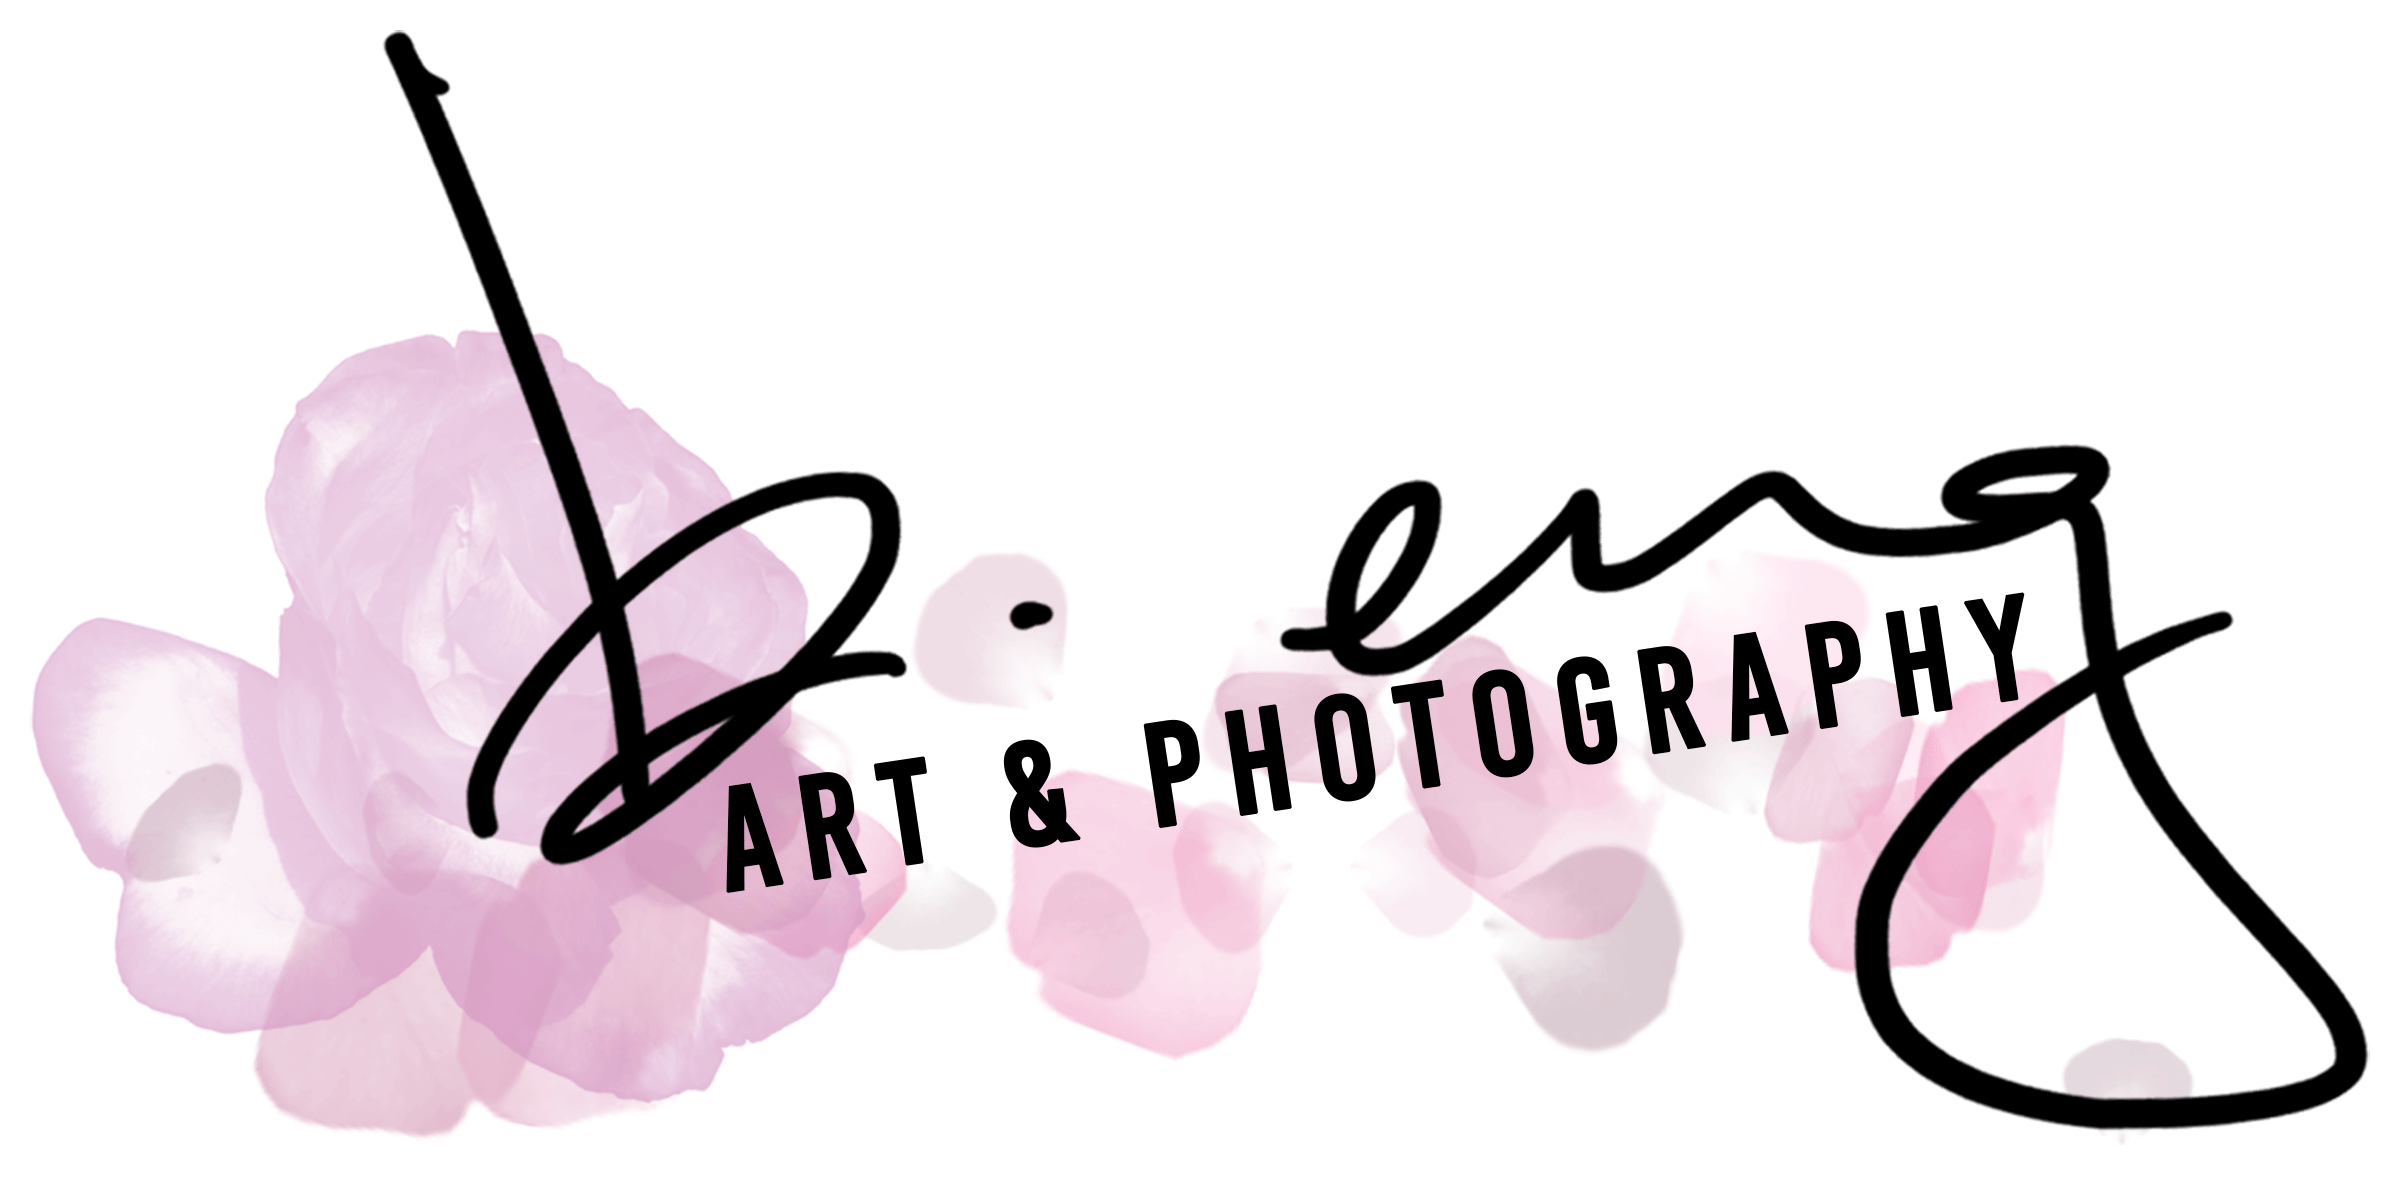 B. Eng Art & Photography